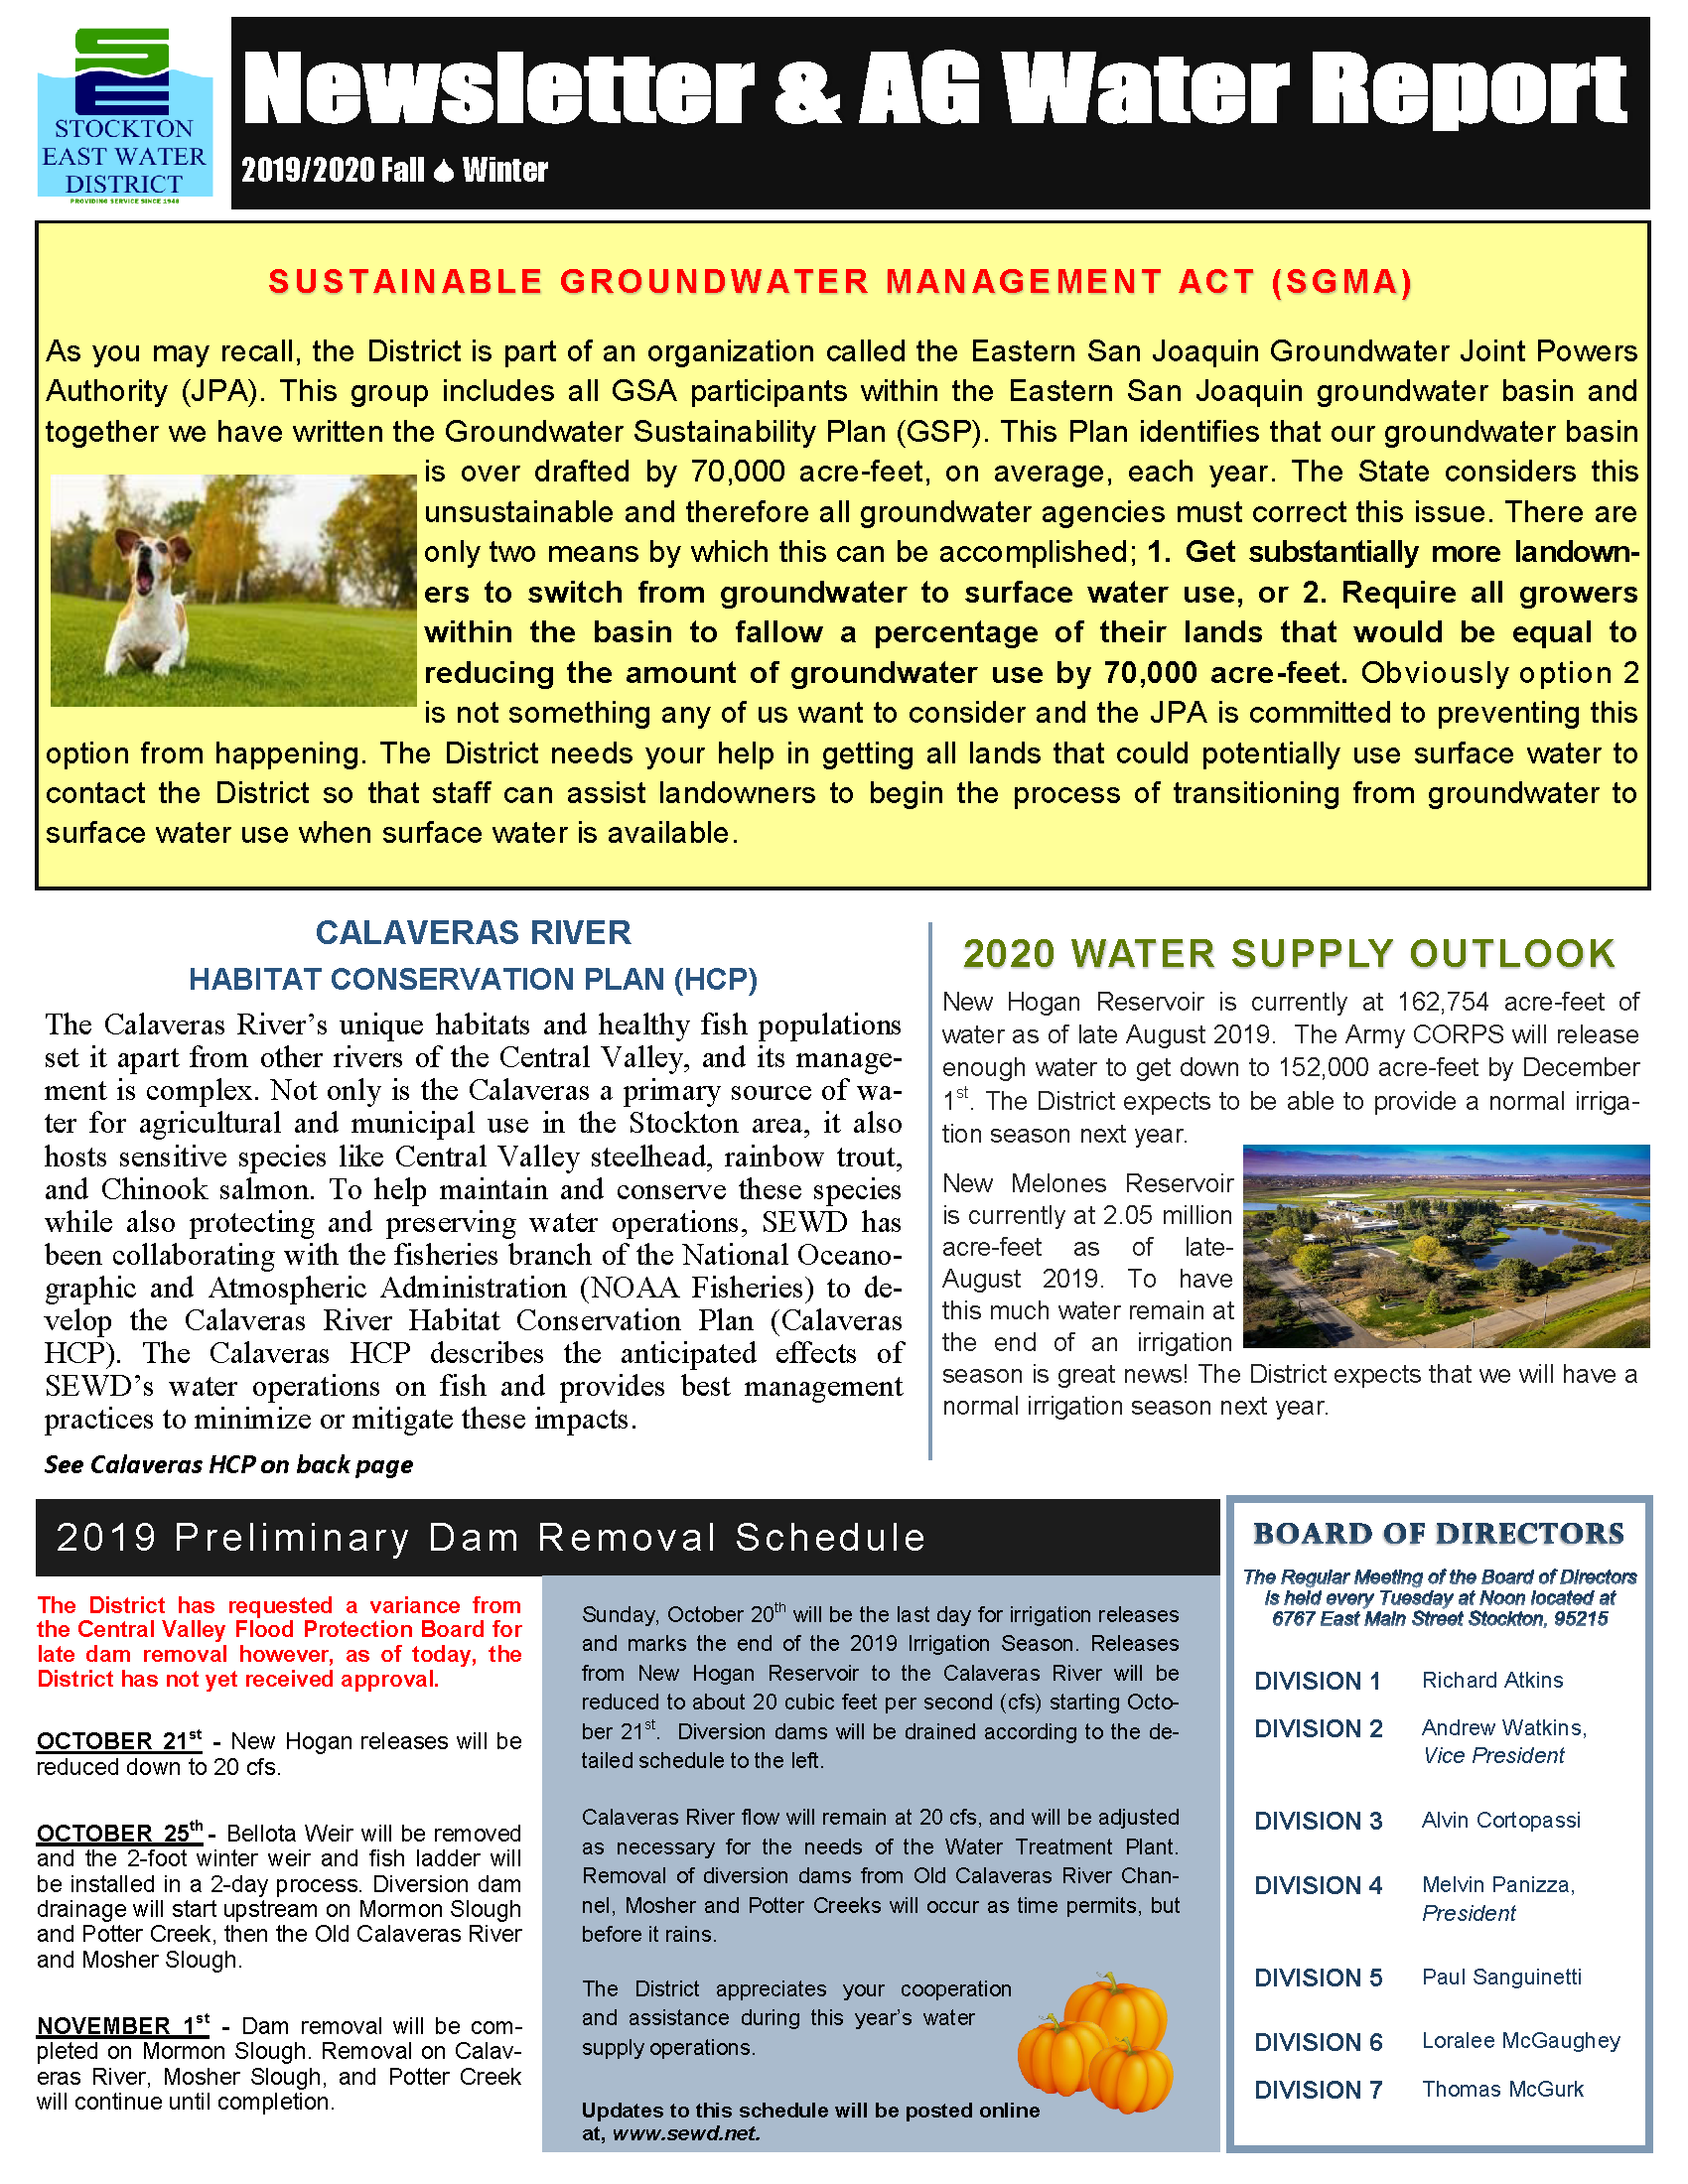 2019 SEWD Fall/Winter Newsletter and AG Water Report